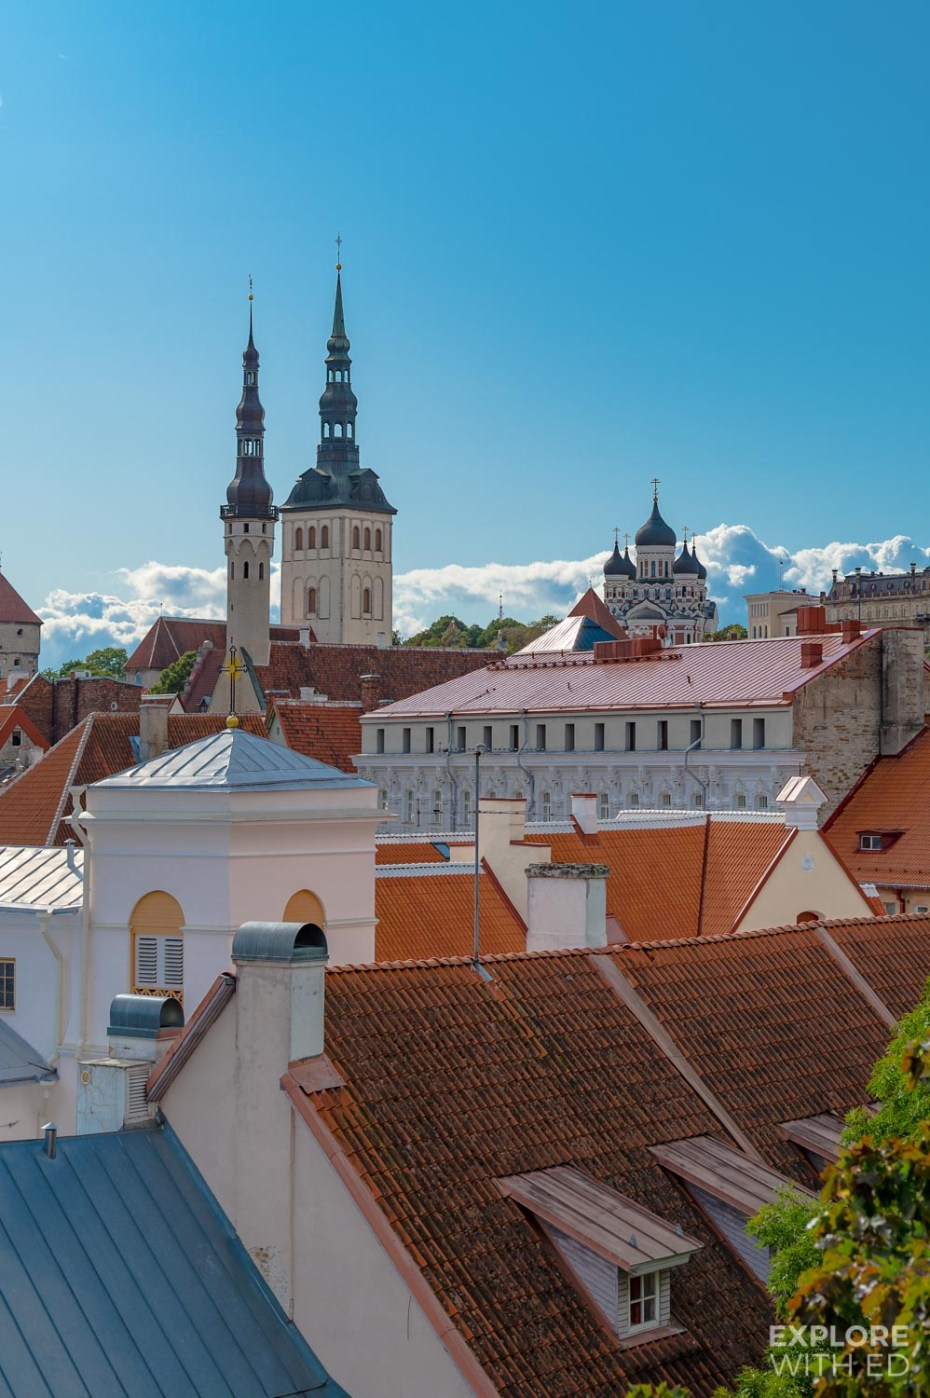 Magical rooftop view of Tallinn from the Hellemann Tower